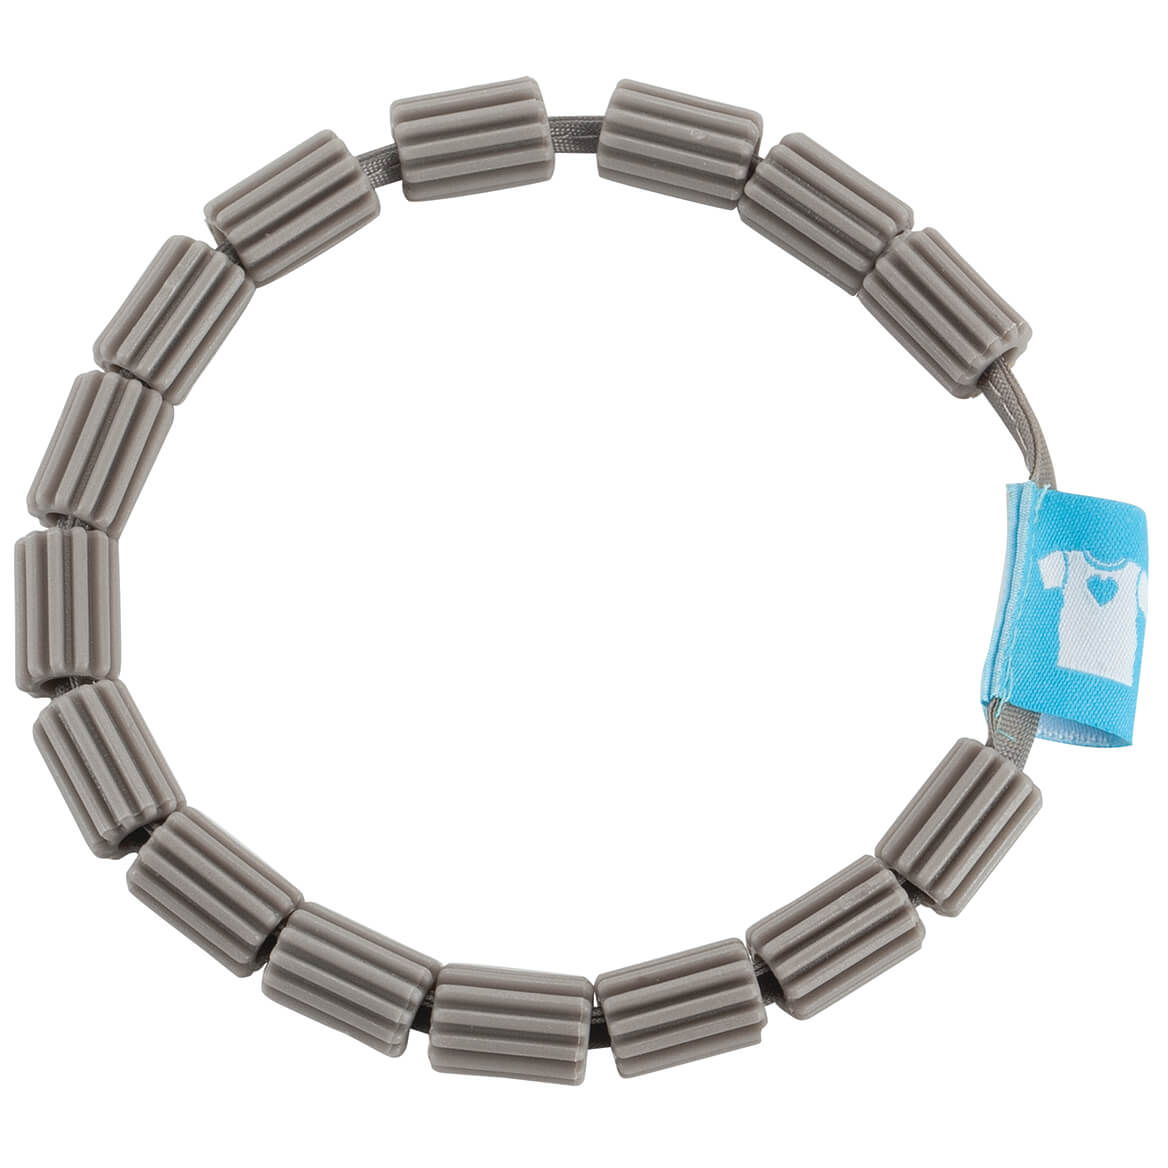 Disinfectant Silver Wash Rings-370937